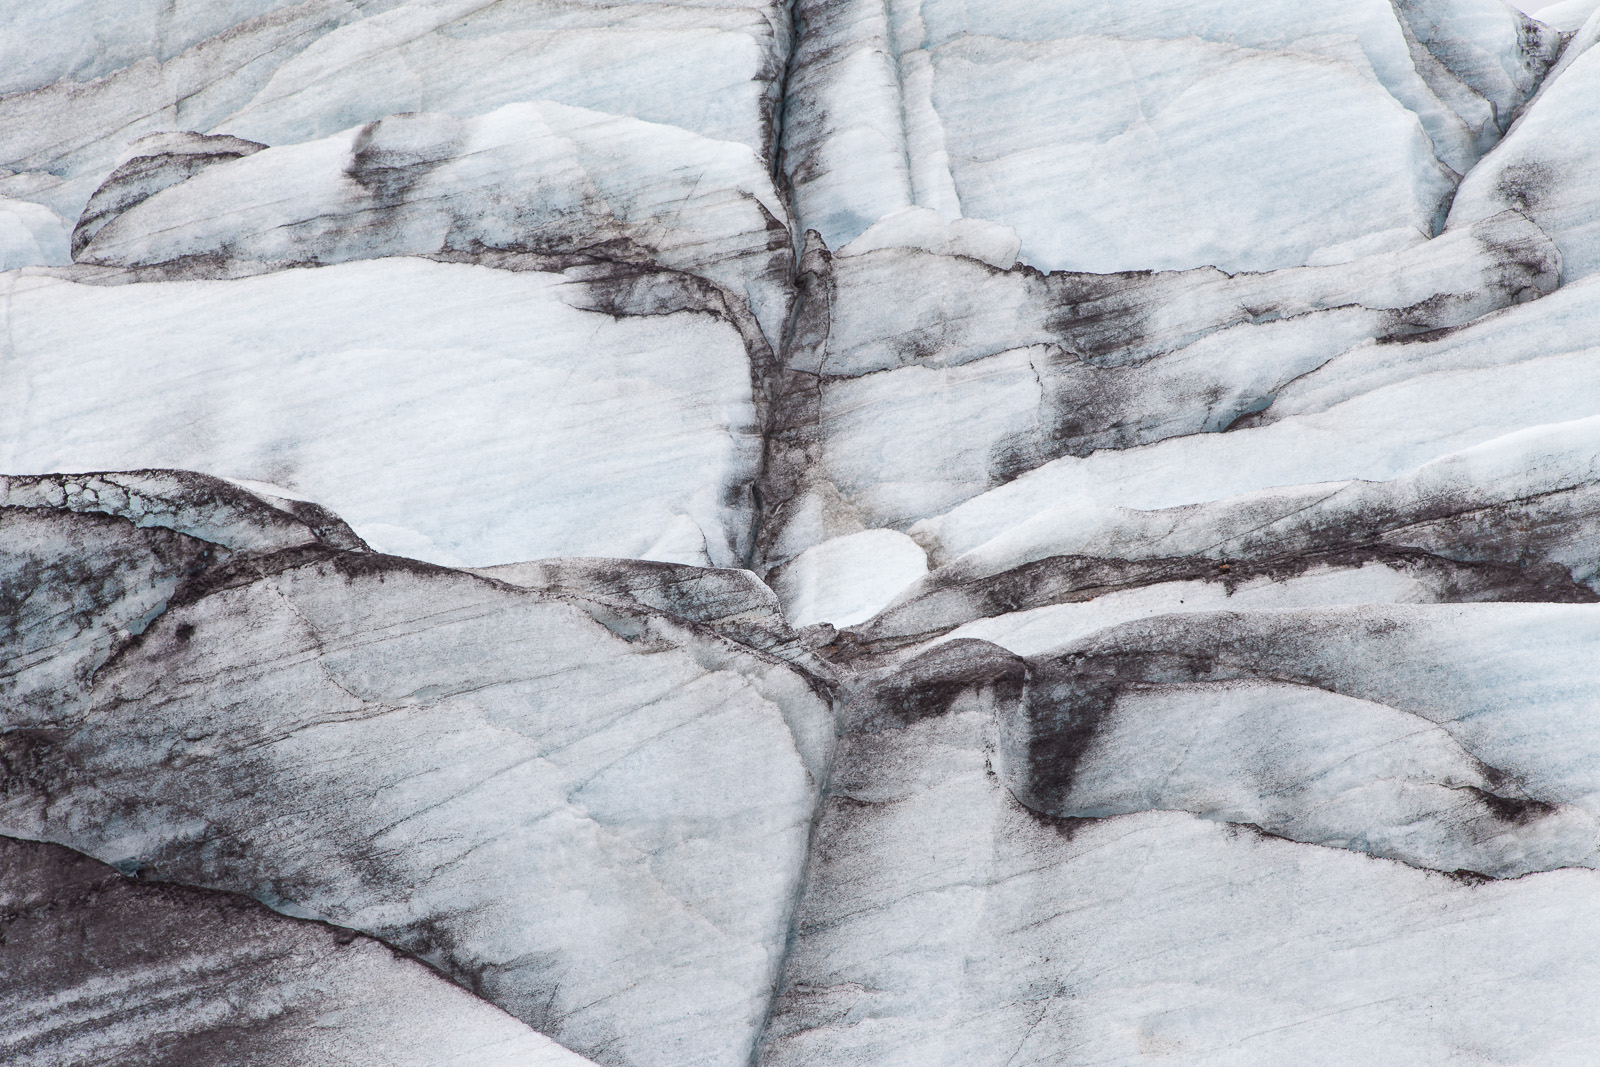 300 year old art: Icelandic glaciers mix pure ice and volcanic ash to create some truly stunning abstract art. It is possible that the catalyst of the French Revolution is in this very photograph…